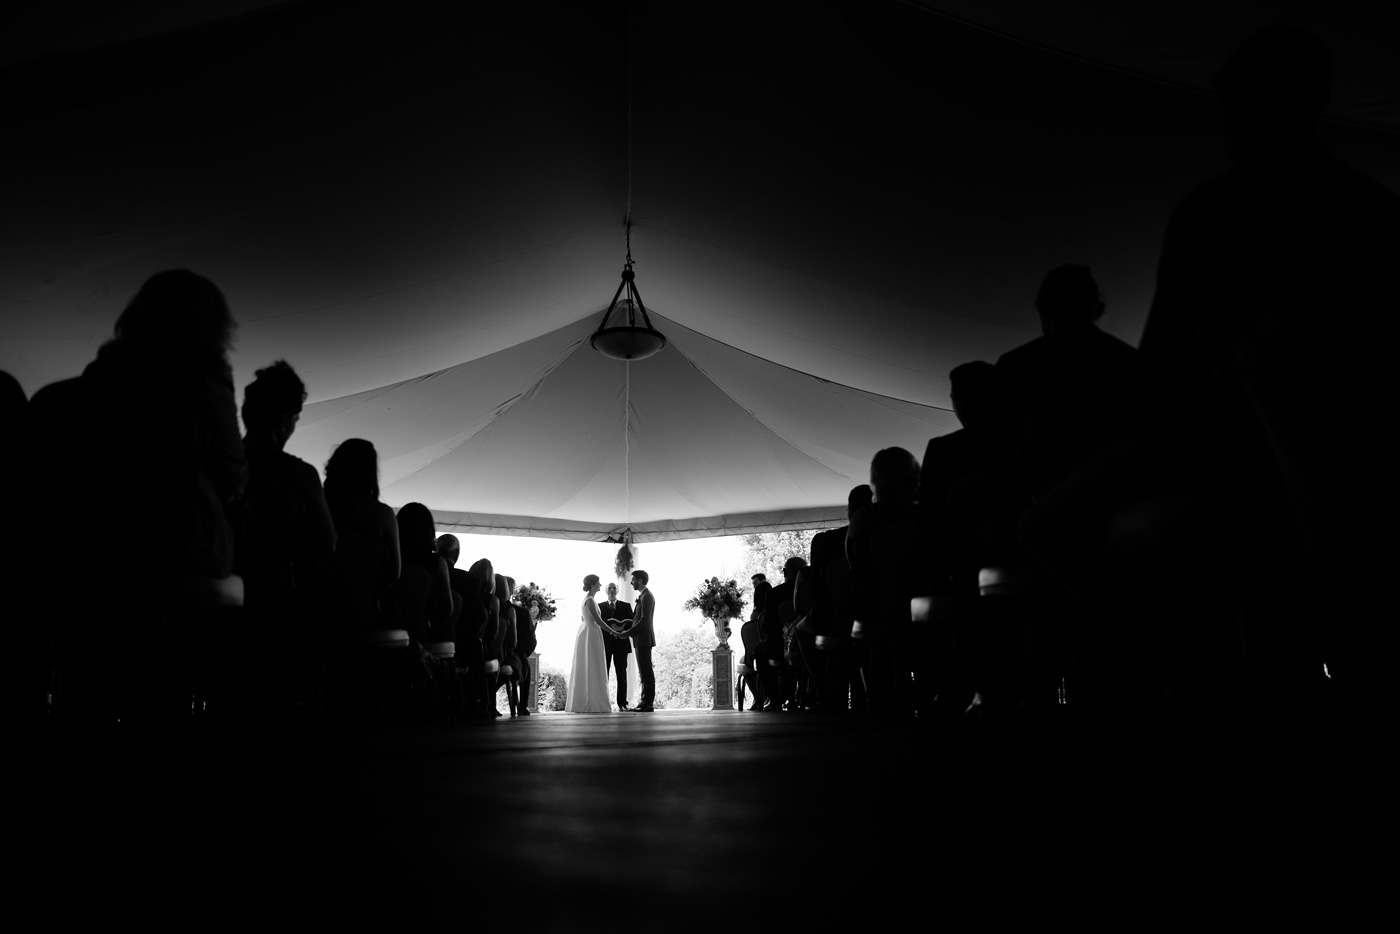 wedding ceremony under a tent